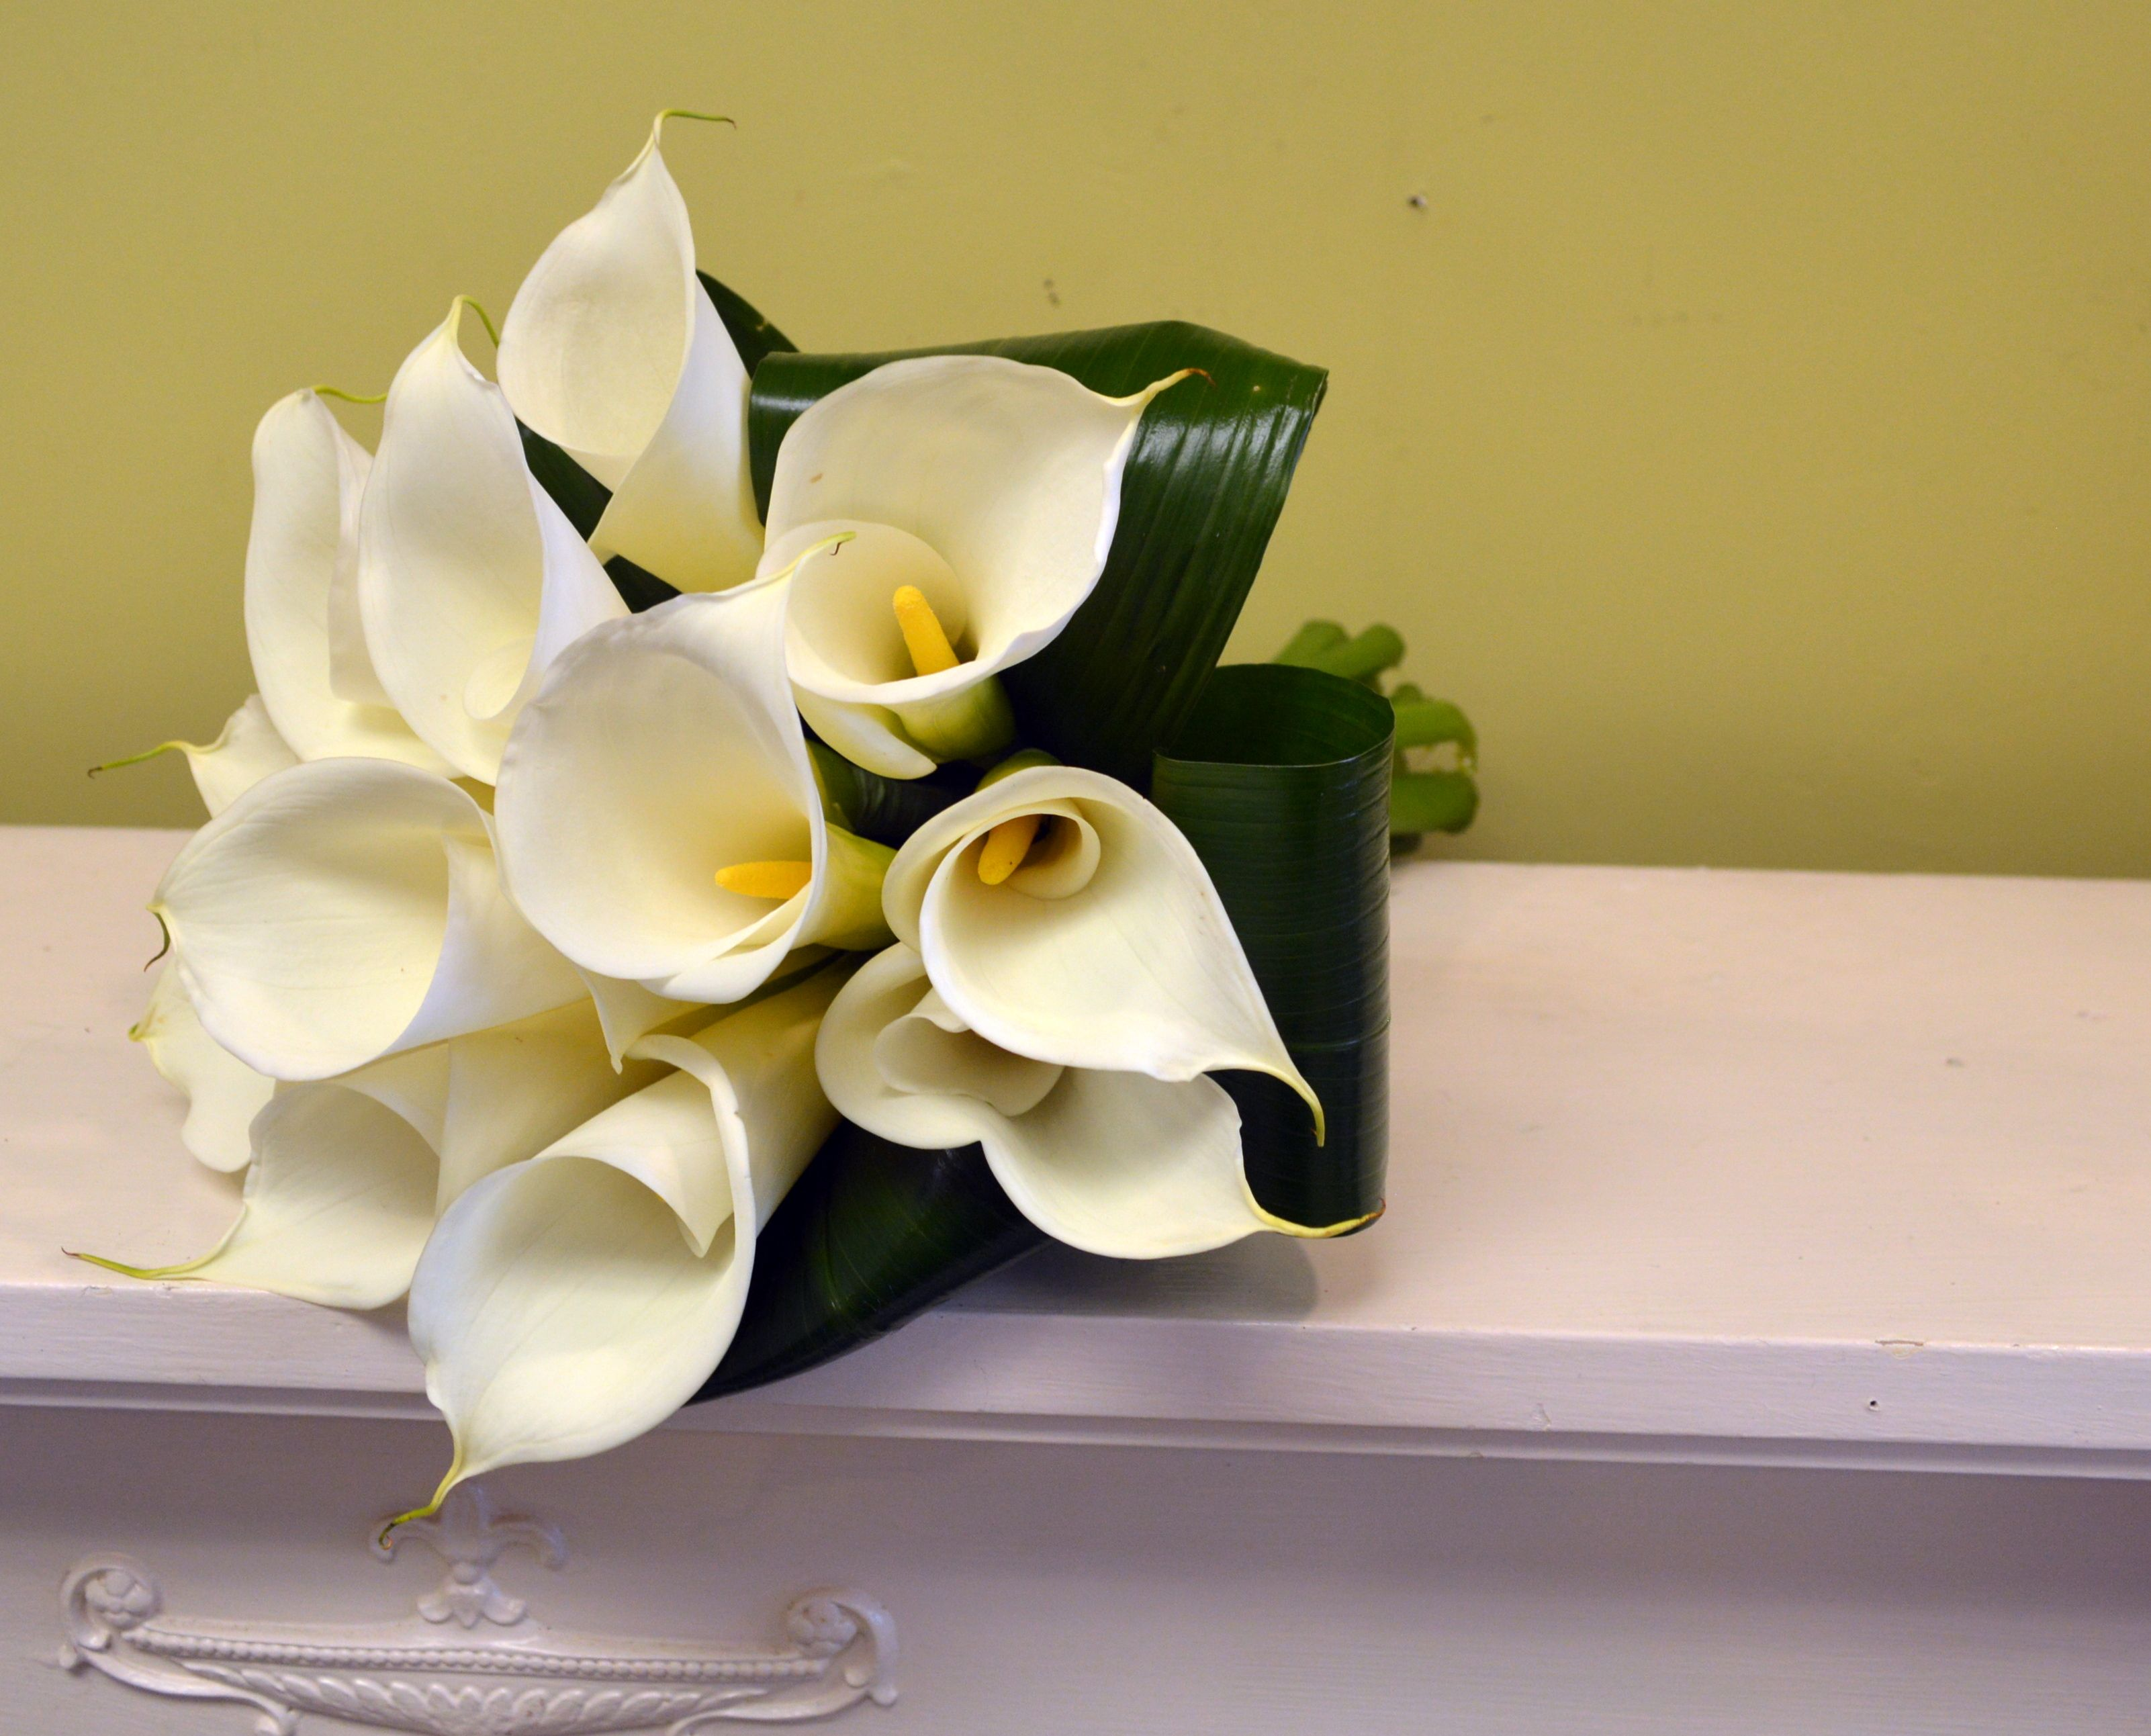 Calla lily bridal bouquet from chesters flowers in utica ny calla lily bridal bouquet from chesters flowers in utica izmirmasajfo Choice Image